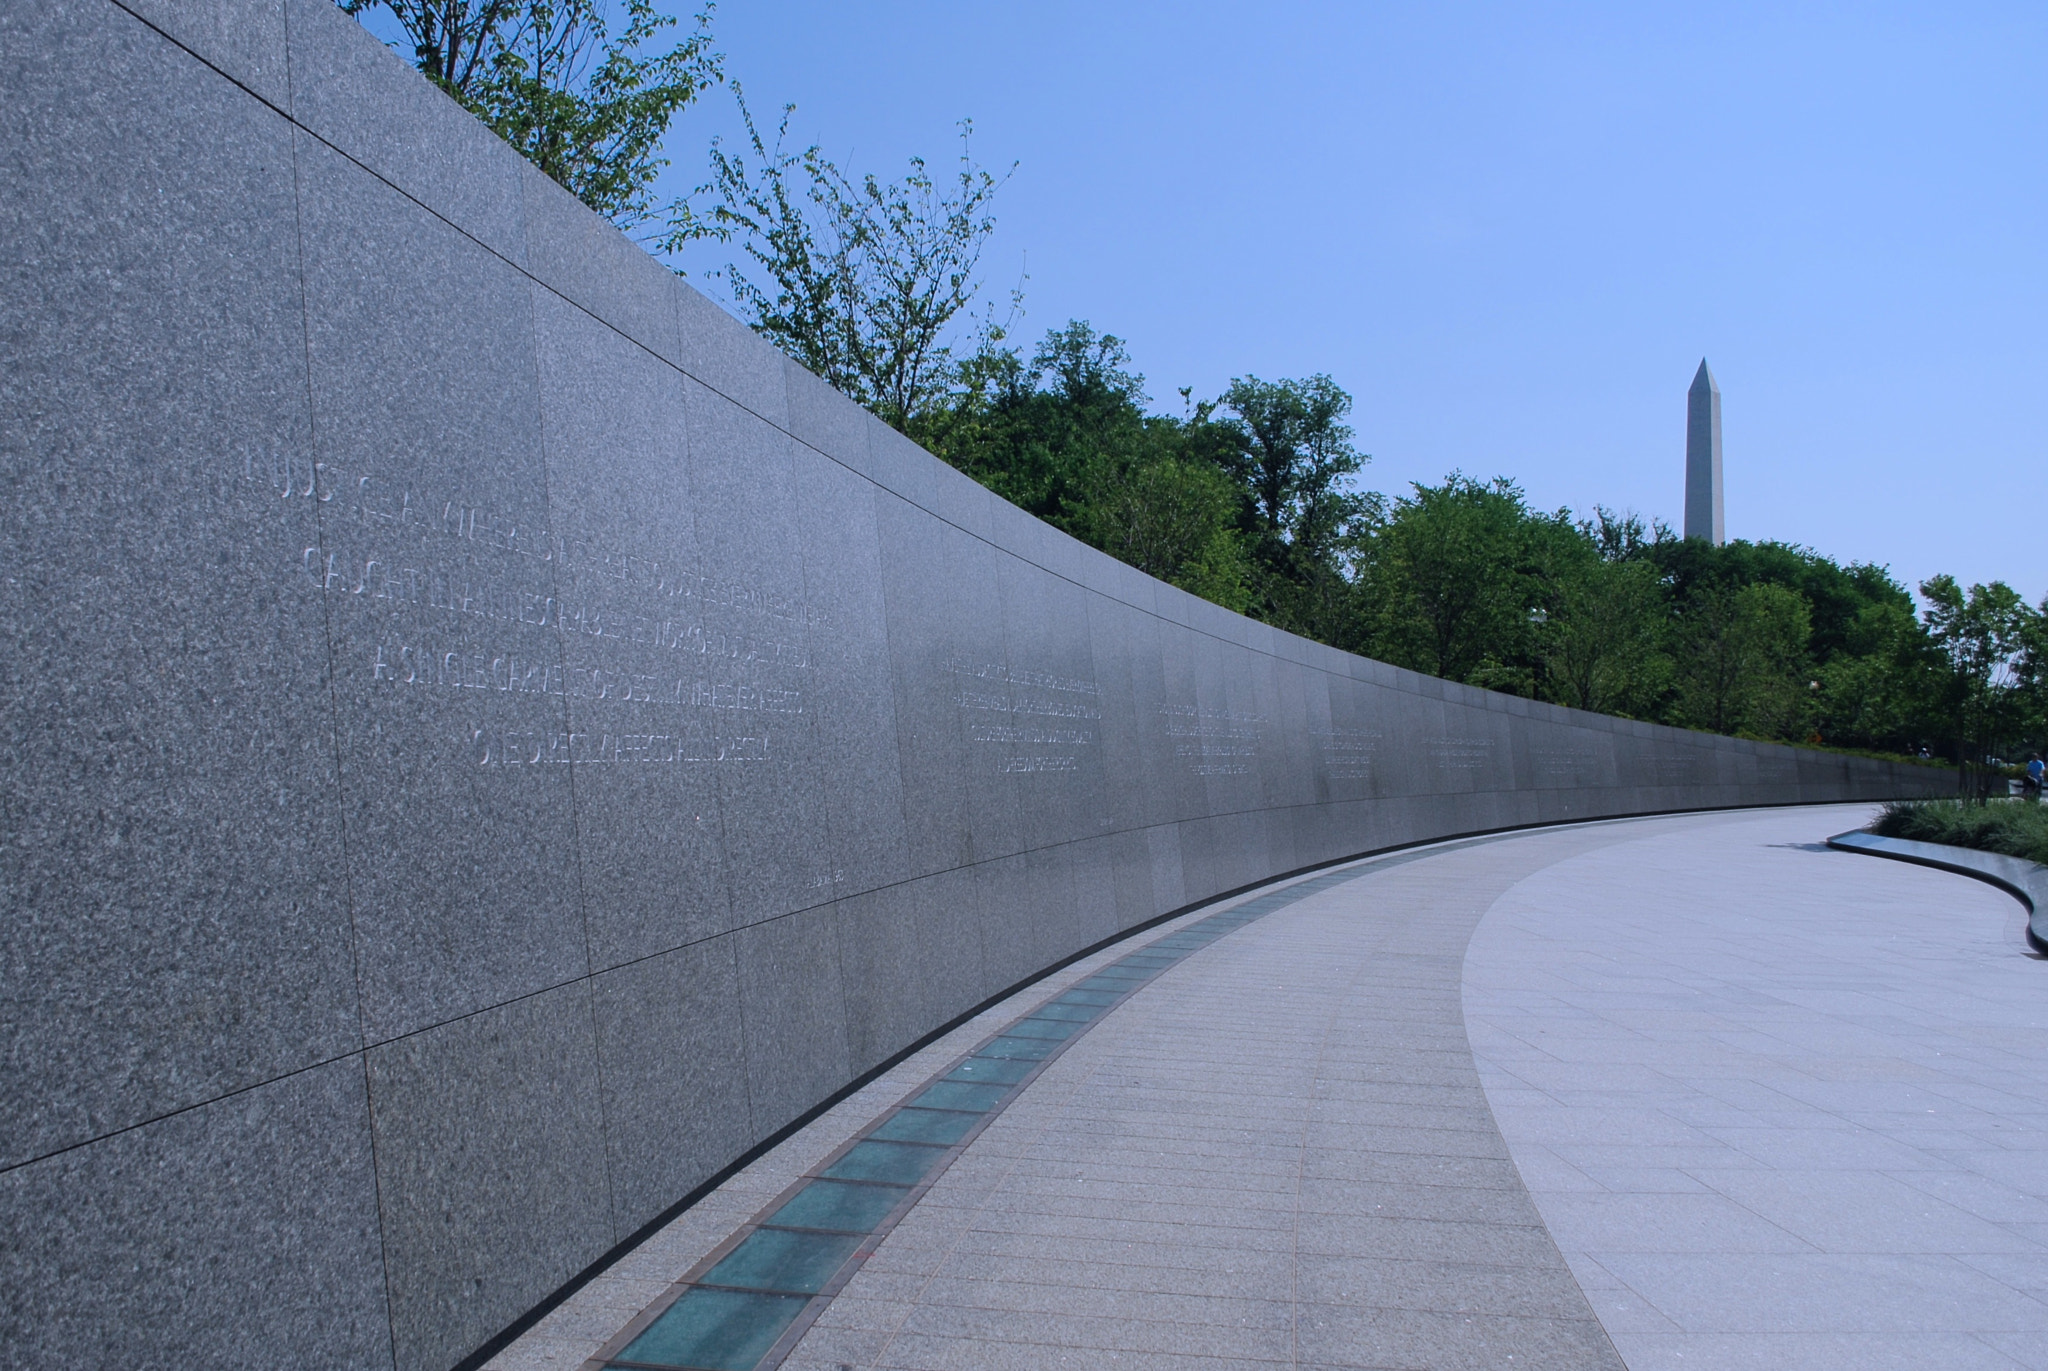 Photograph MLK Memorial by Scott Aukema on 500px